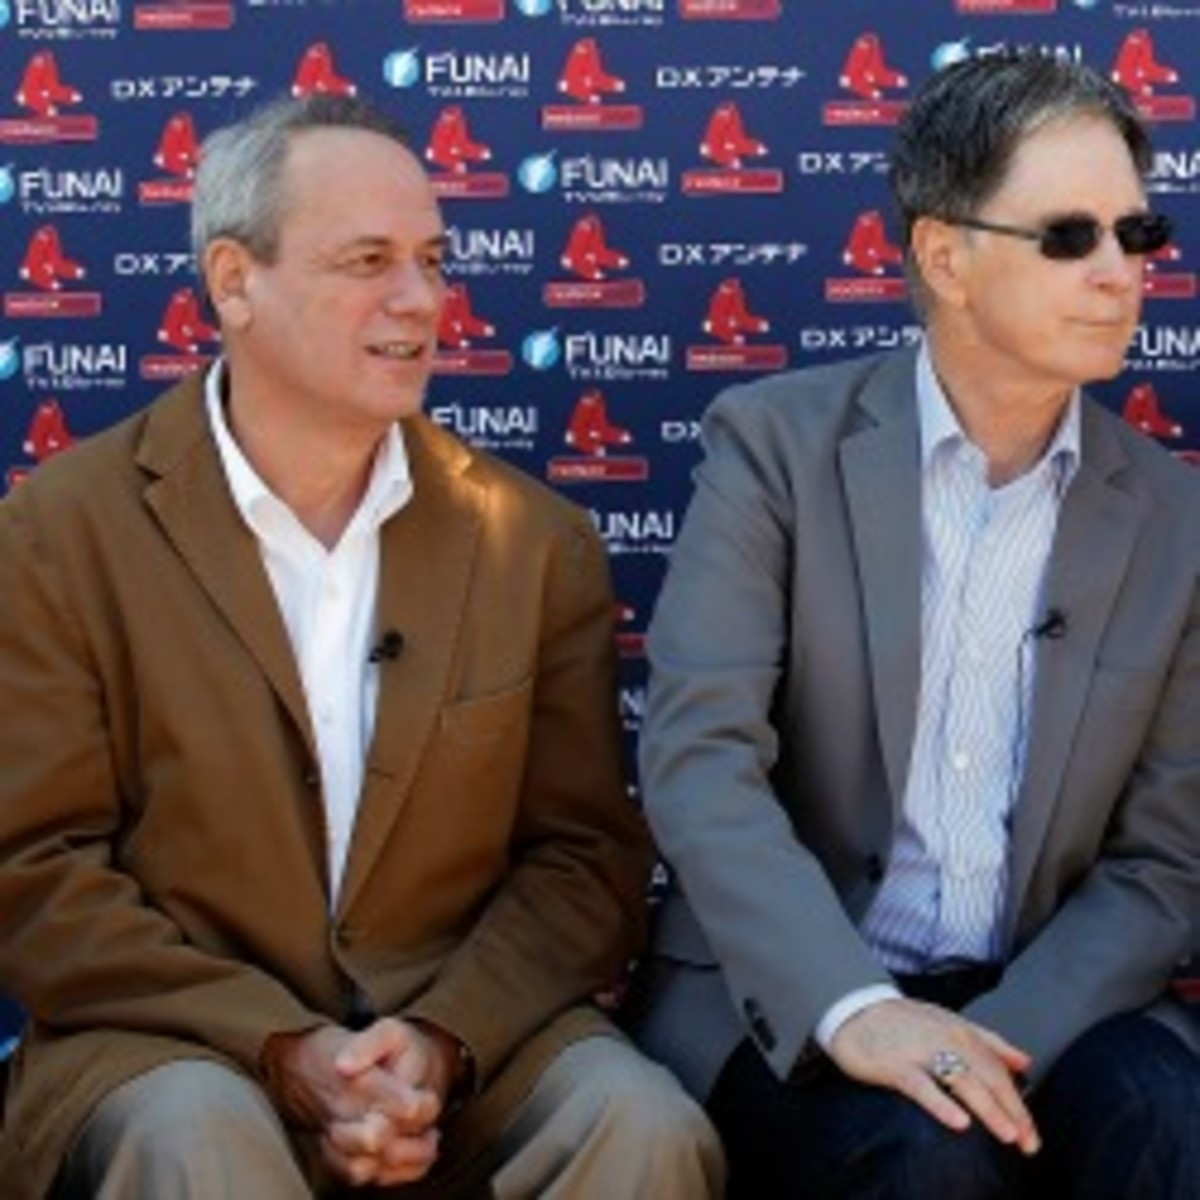 Red Sox President/CEO Larry Lucchino (left) and owner John Henry have been involved in the medical staff saga that has divided the team over the past several years. (J. Meric/Getty Images)